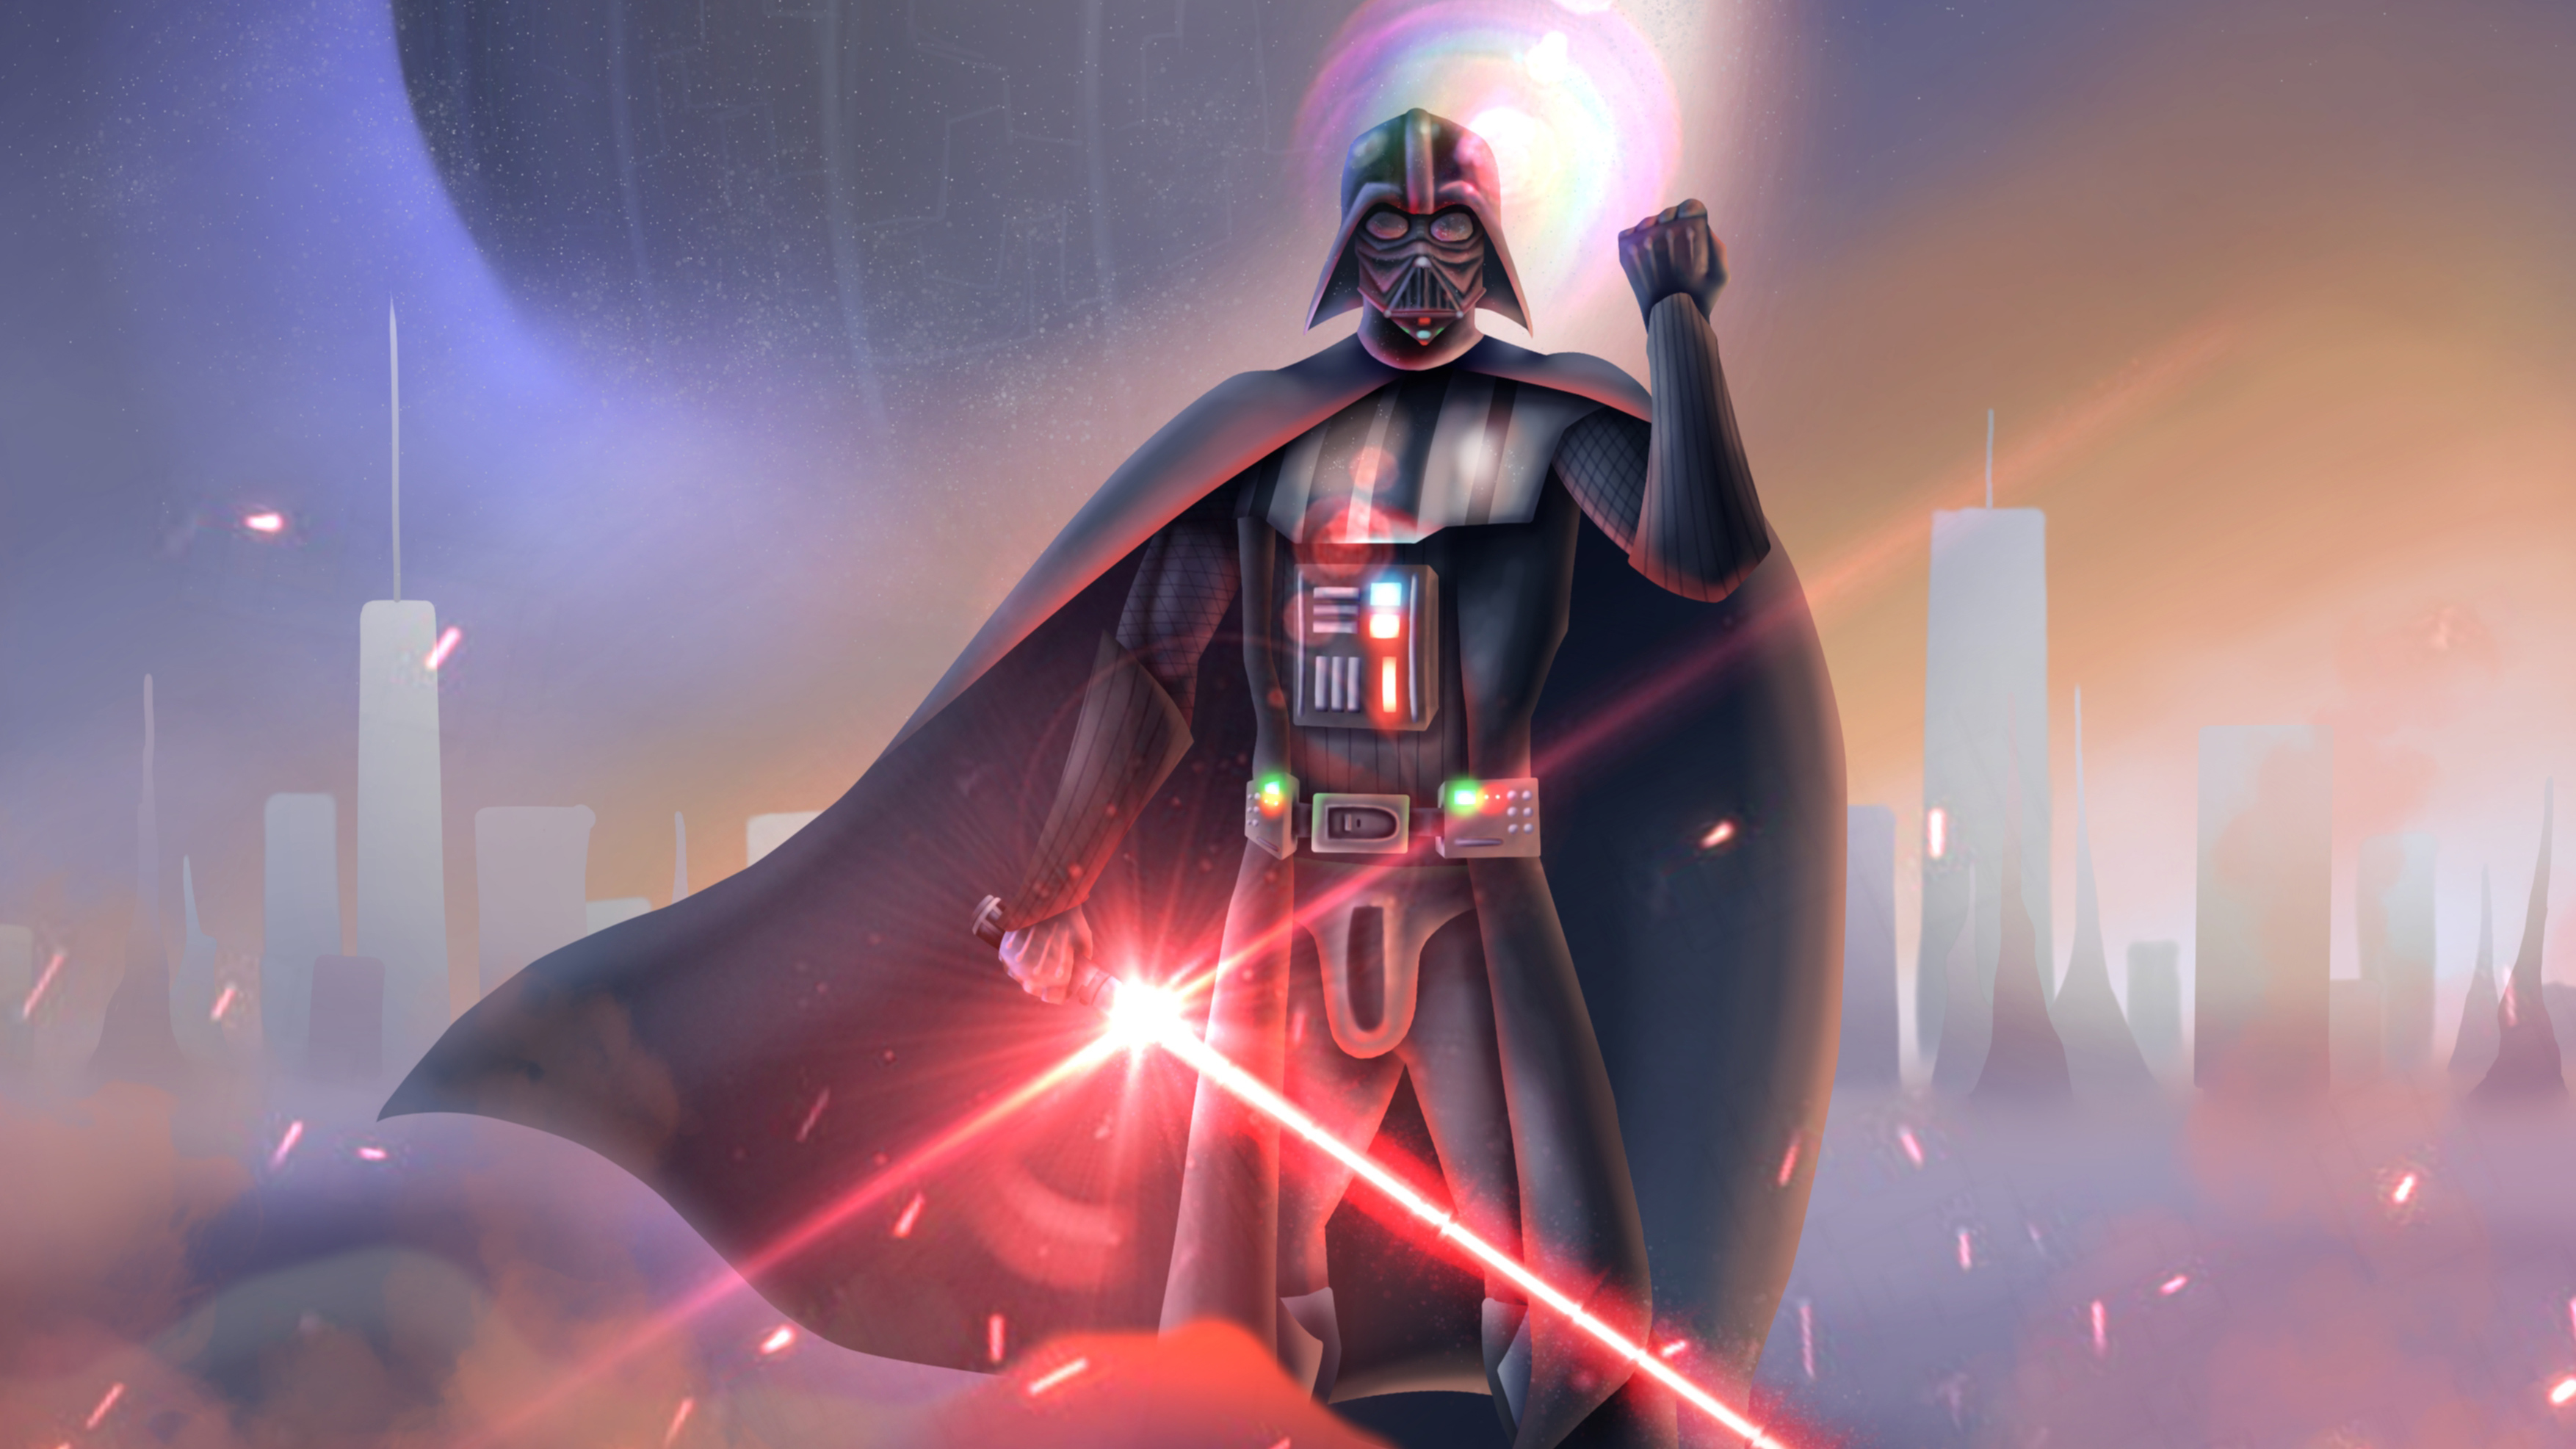 Darth Vader Lightsaber Star Wars Wallpaper Hd Movies 4k Wallpapers Images Photos And Background Wallpapers Den